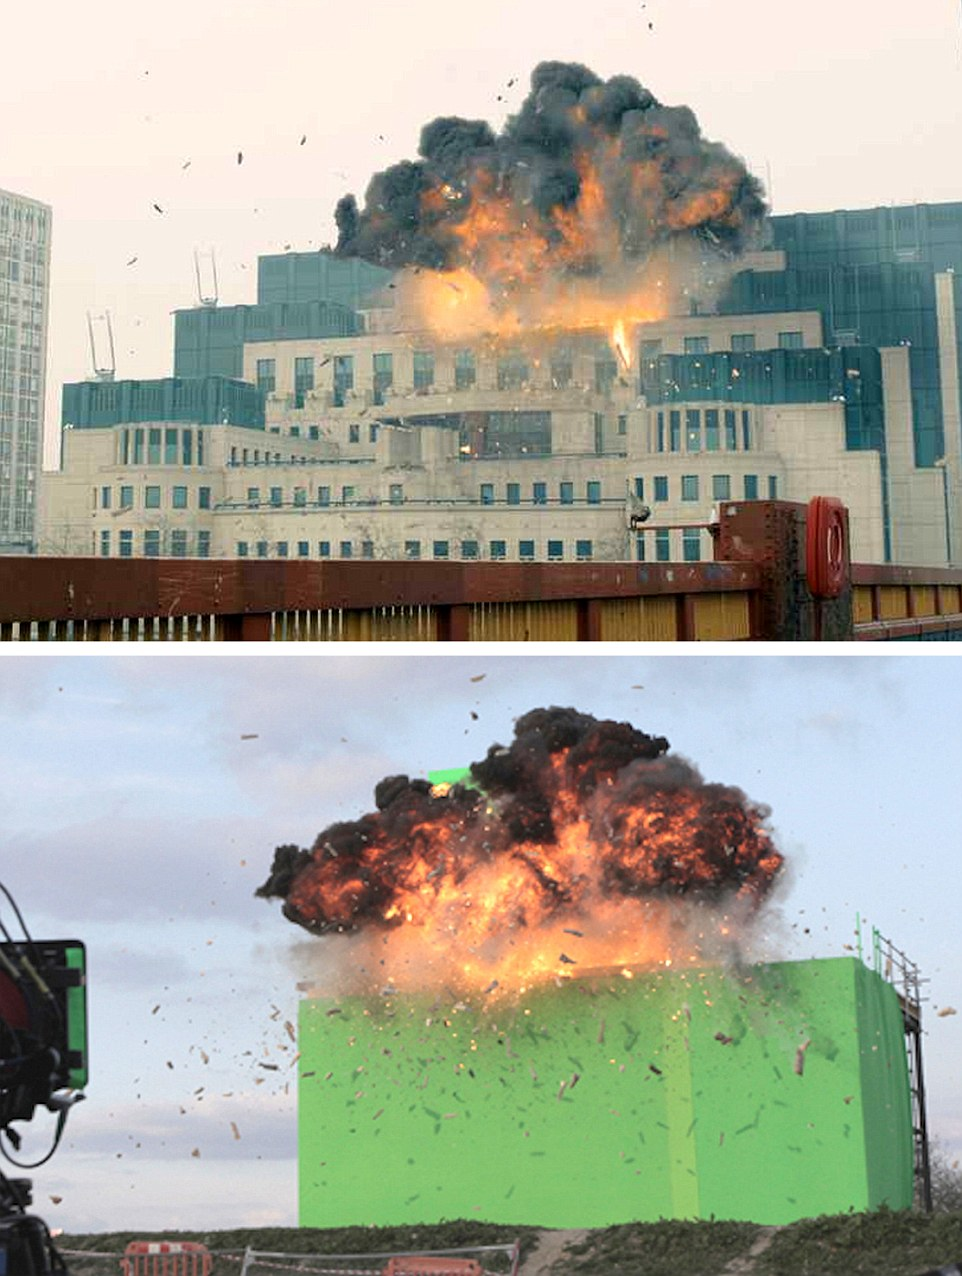 Skyfall (2012) - In now a famous James Bond legendary scene the MI6 building on London's Thameside building is scene expoding - however (TOP) the real explosion took place safely some 25 miles away on a scaffold construction at Pinewood Studios before 'layered' on digitally to film of the real headquarters